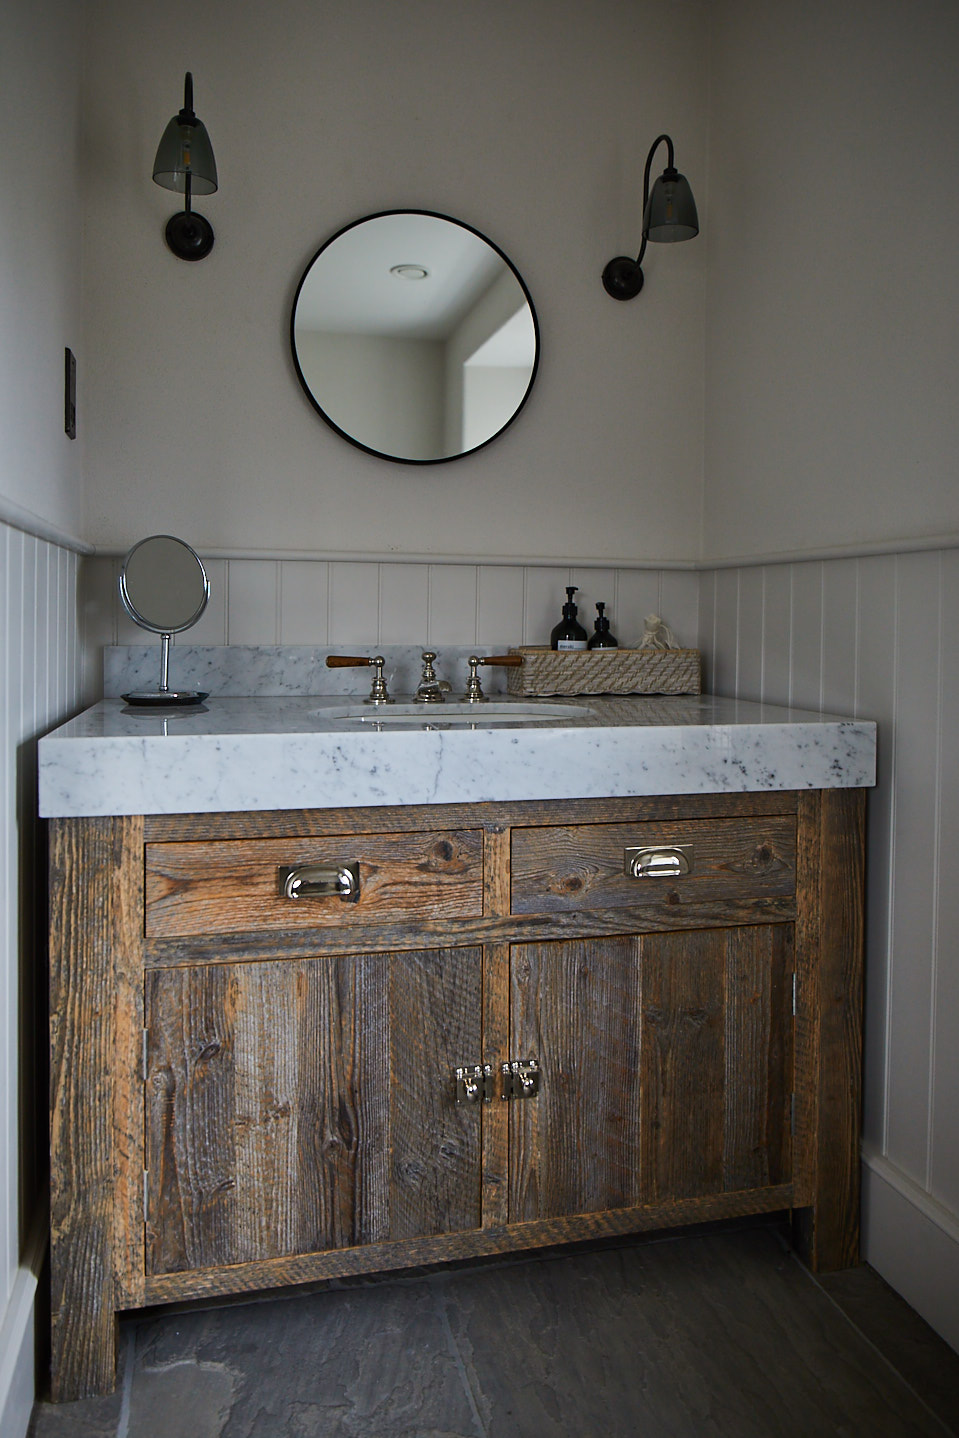 Reclaimed vanity unit with granite worktop